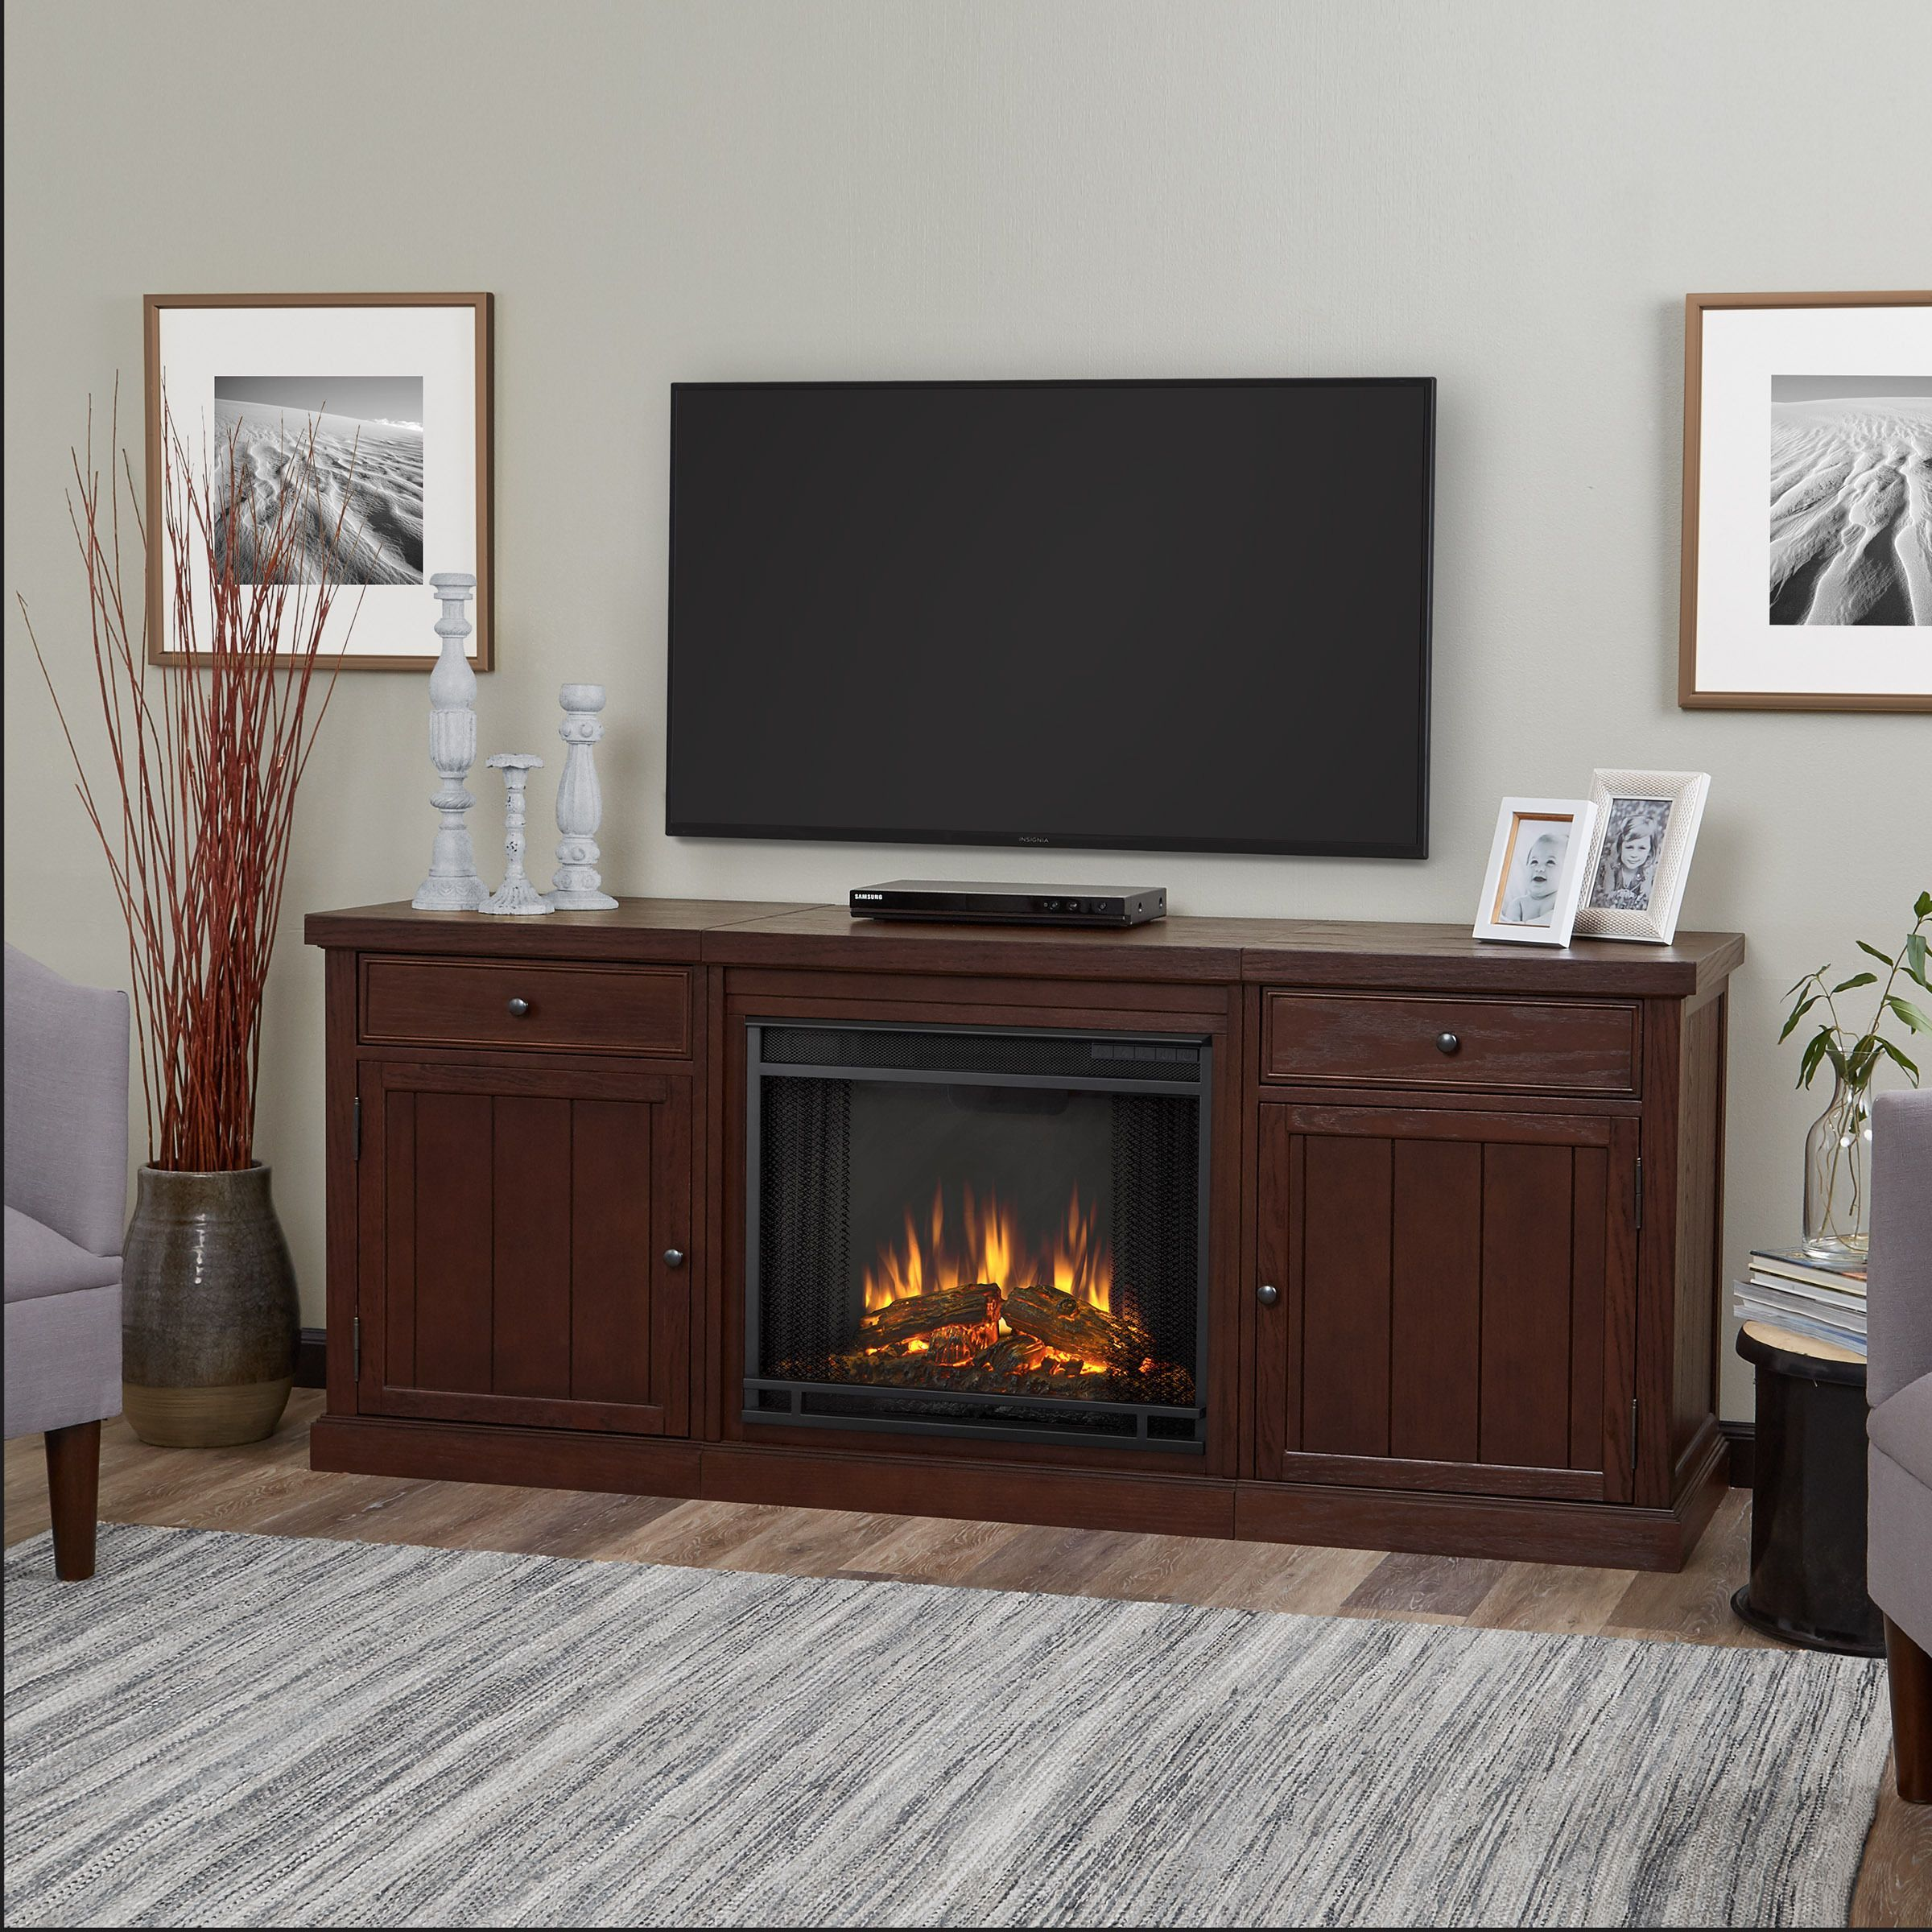 Real Flame Cassidy Electric Entertainment Fireplace Chestnut Brown Oak Finish Cassidy Electric Fireplace Real Flame Chestnut Oak Products In 2019 Elect